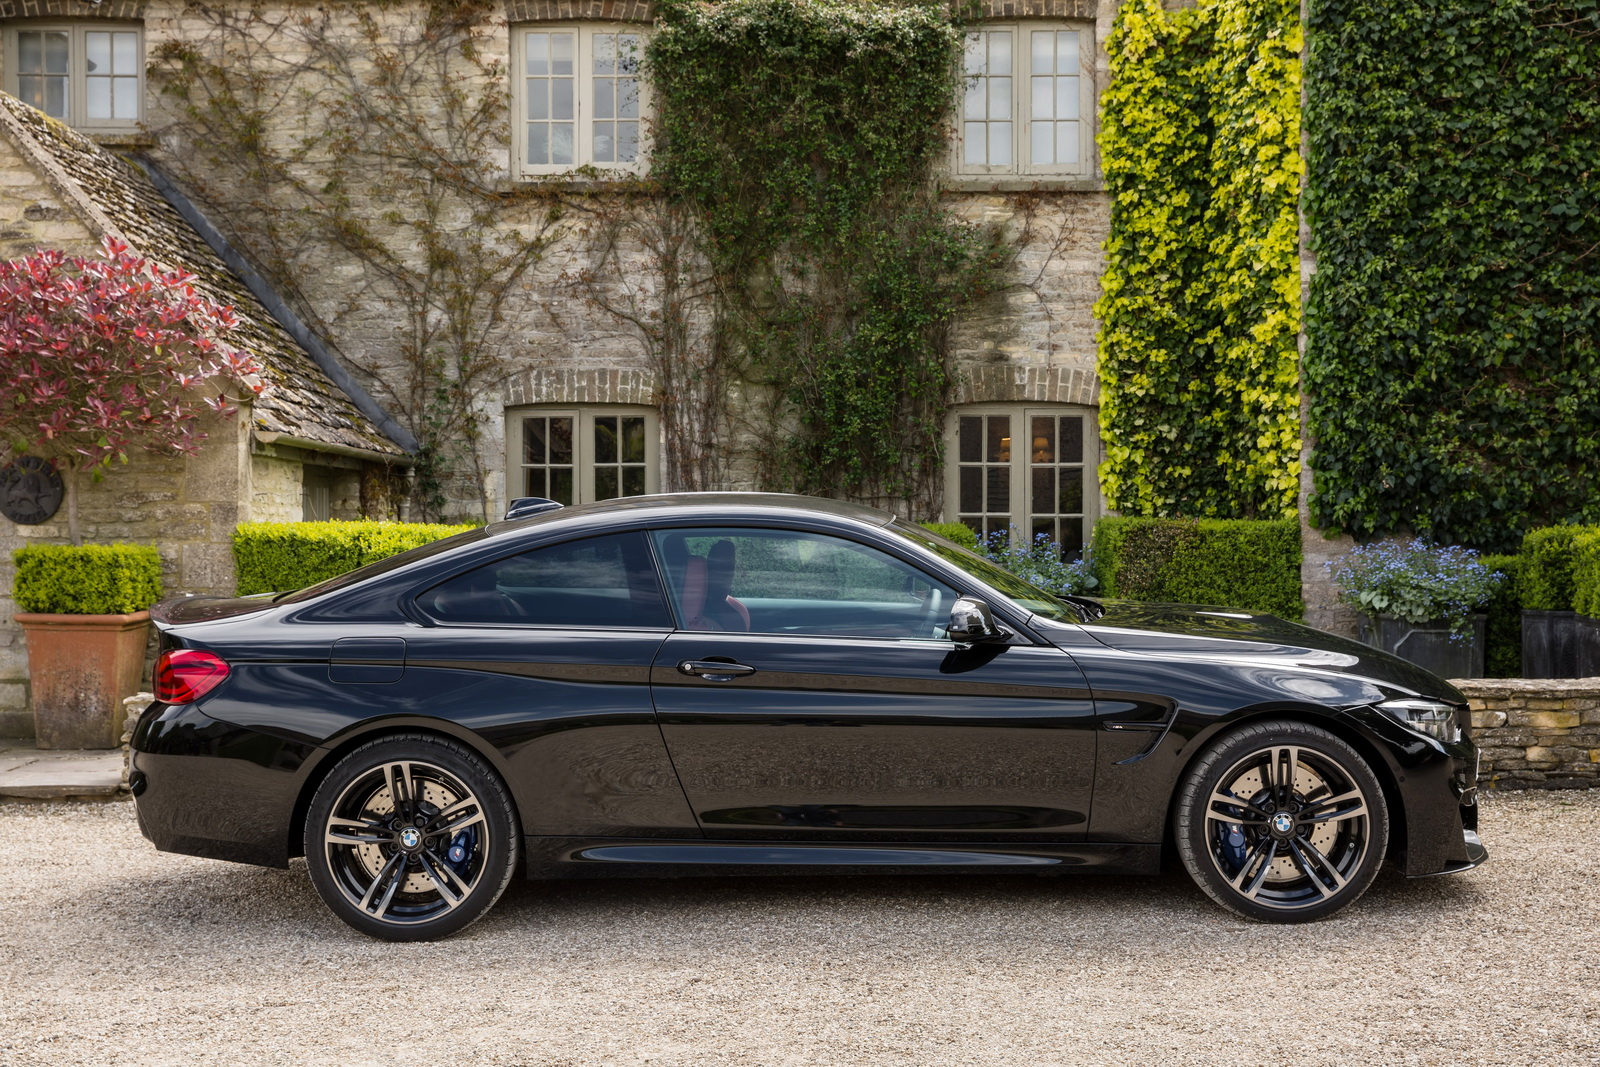 Bmw M4 Exhaust Tips >> 2018 BMW 4-Series Priced From £32,580 In The UK, M4 From £58,365 | Carscoops